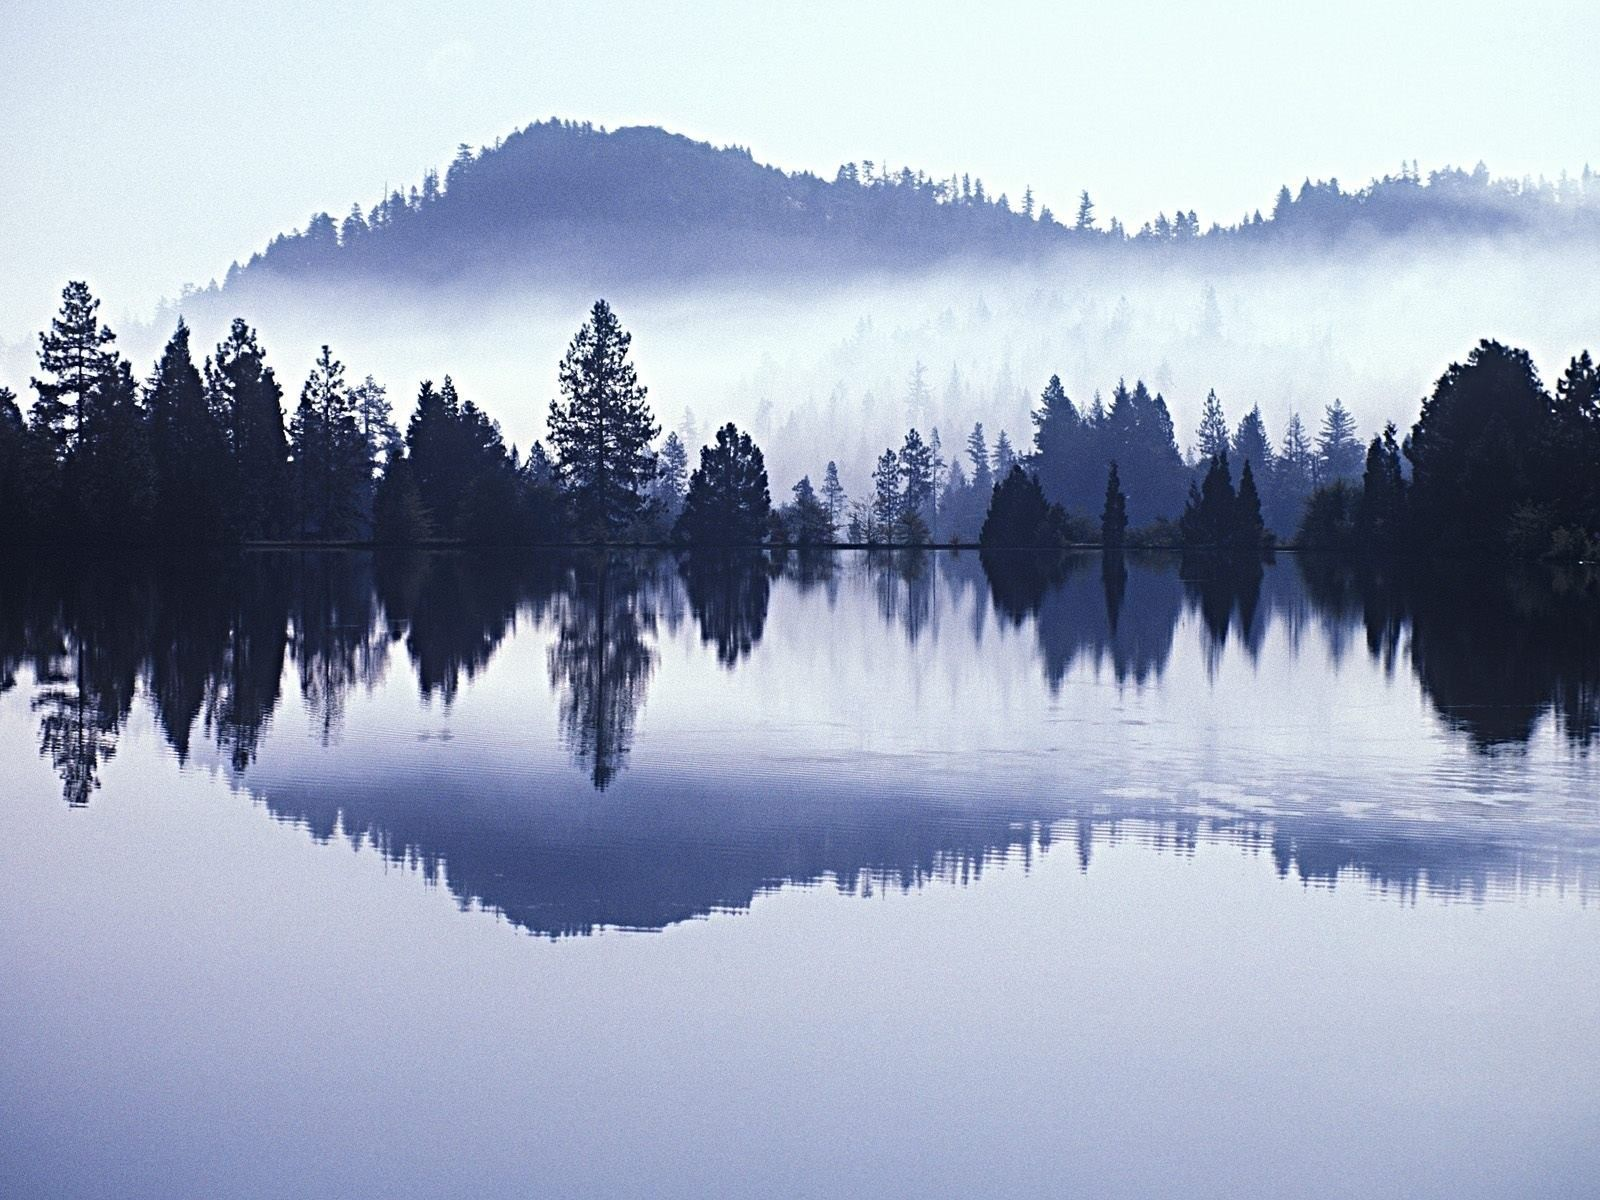 Forest Water Trees Fog Mist Mountain Morning Lake Trout Picture Landscape Photography Landscape Pictures Beautiful Landscape Photography Hd wallpaper morning lake trees fog